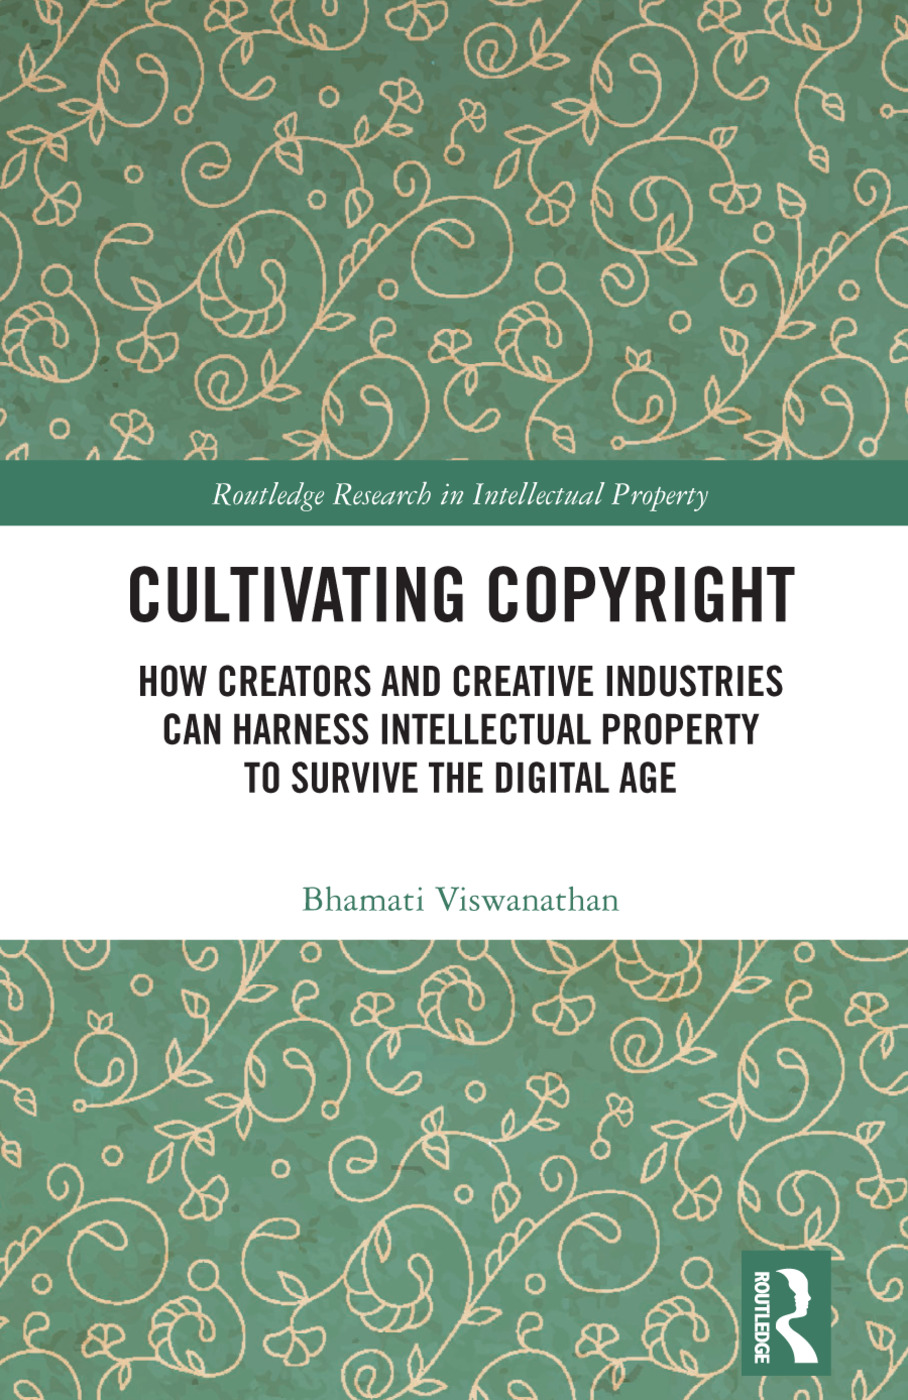 Cultivating Copyright: How Creators and Creative Industries Can Harness Intellectual Property to Survive the Digital Age book cover